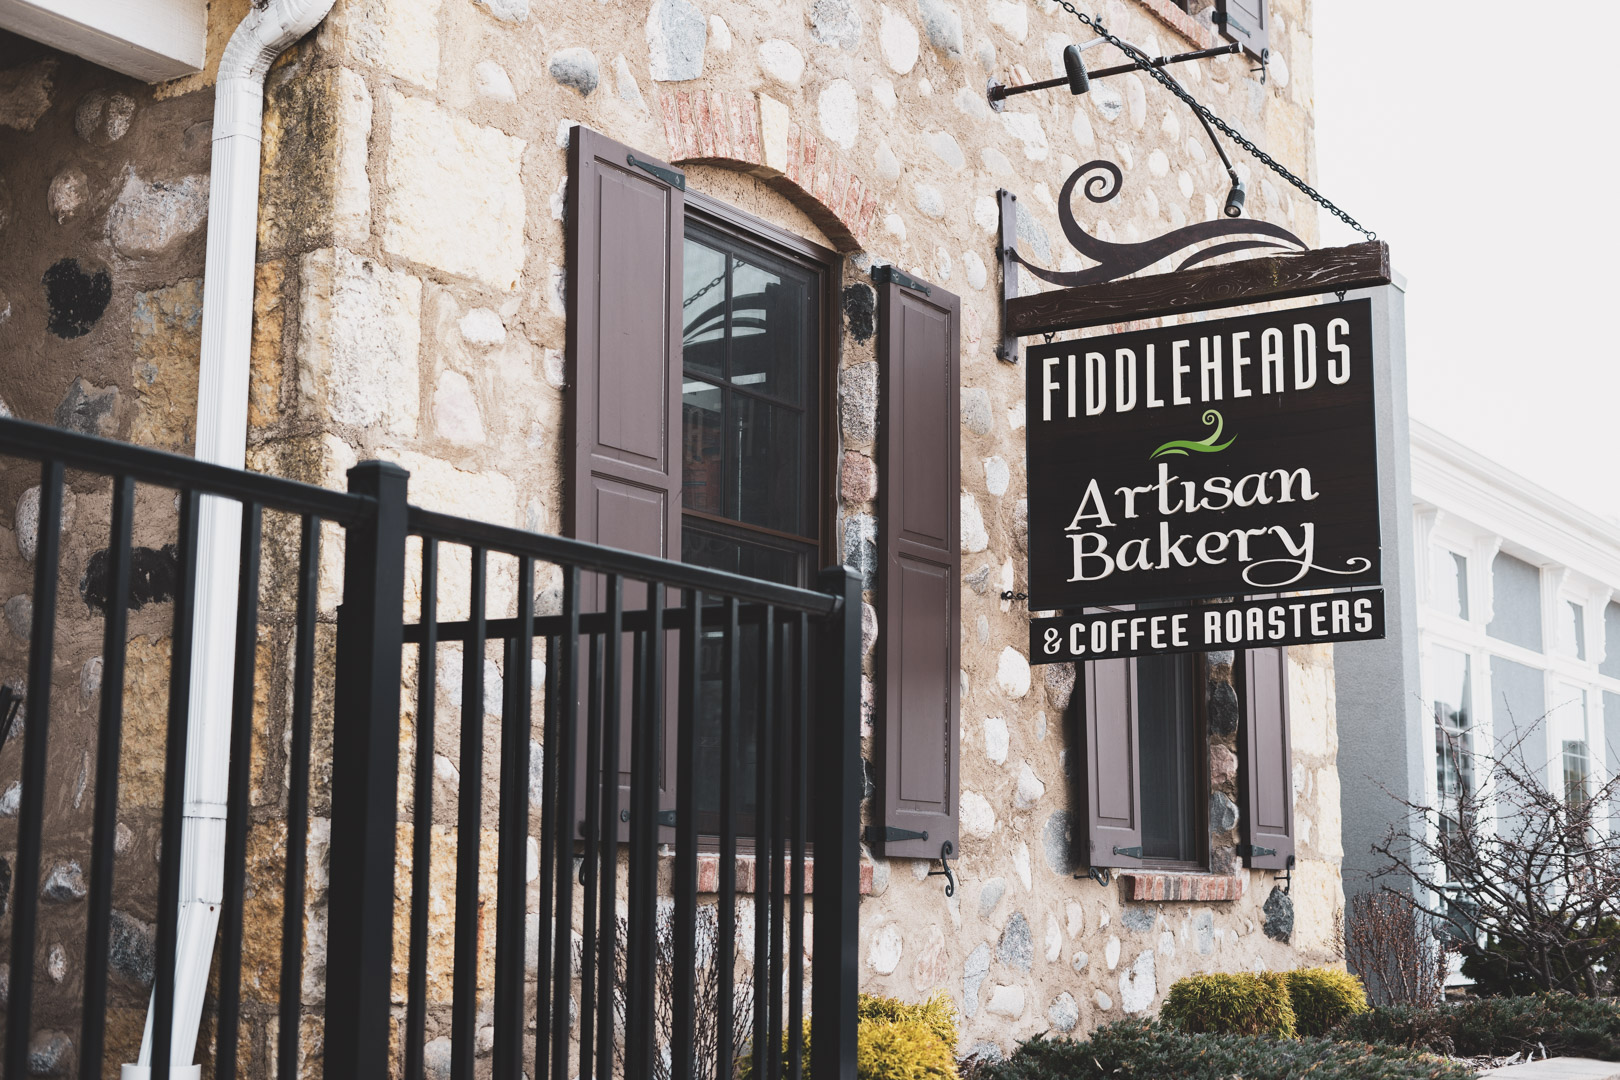 Fiddleheads Bakery and Coffee Roasters